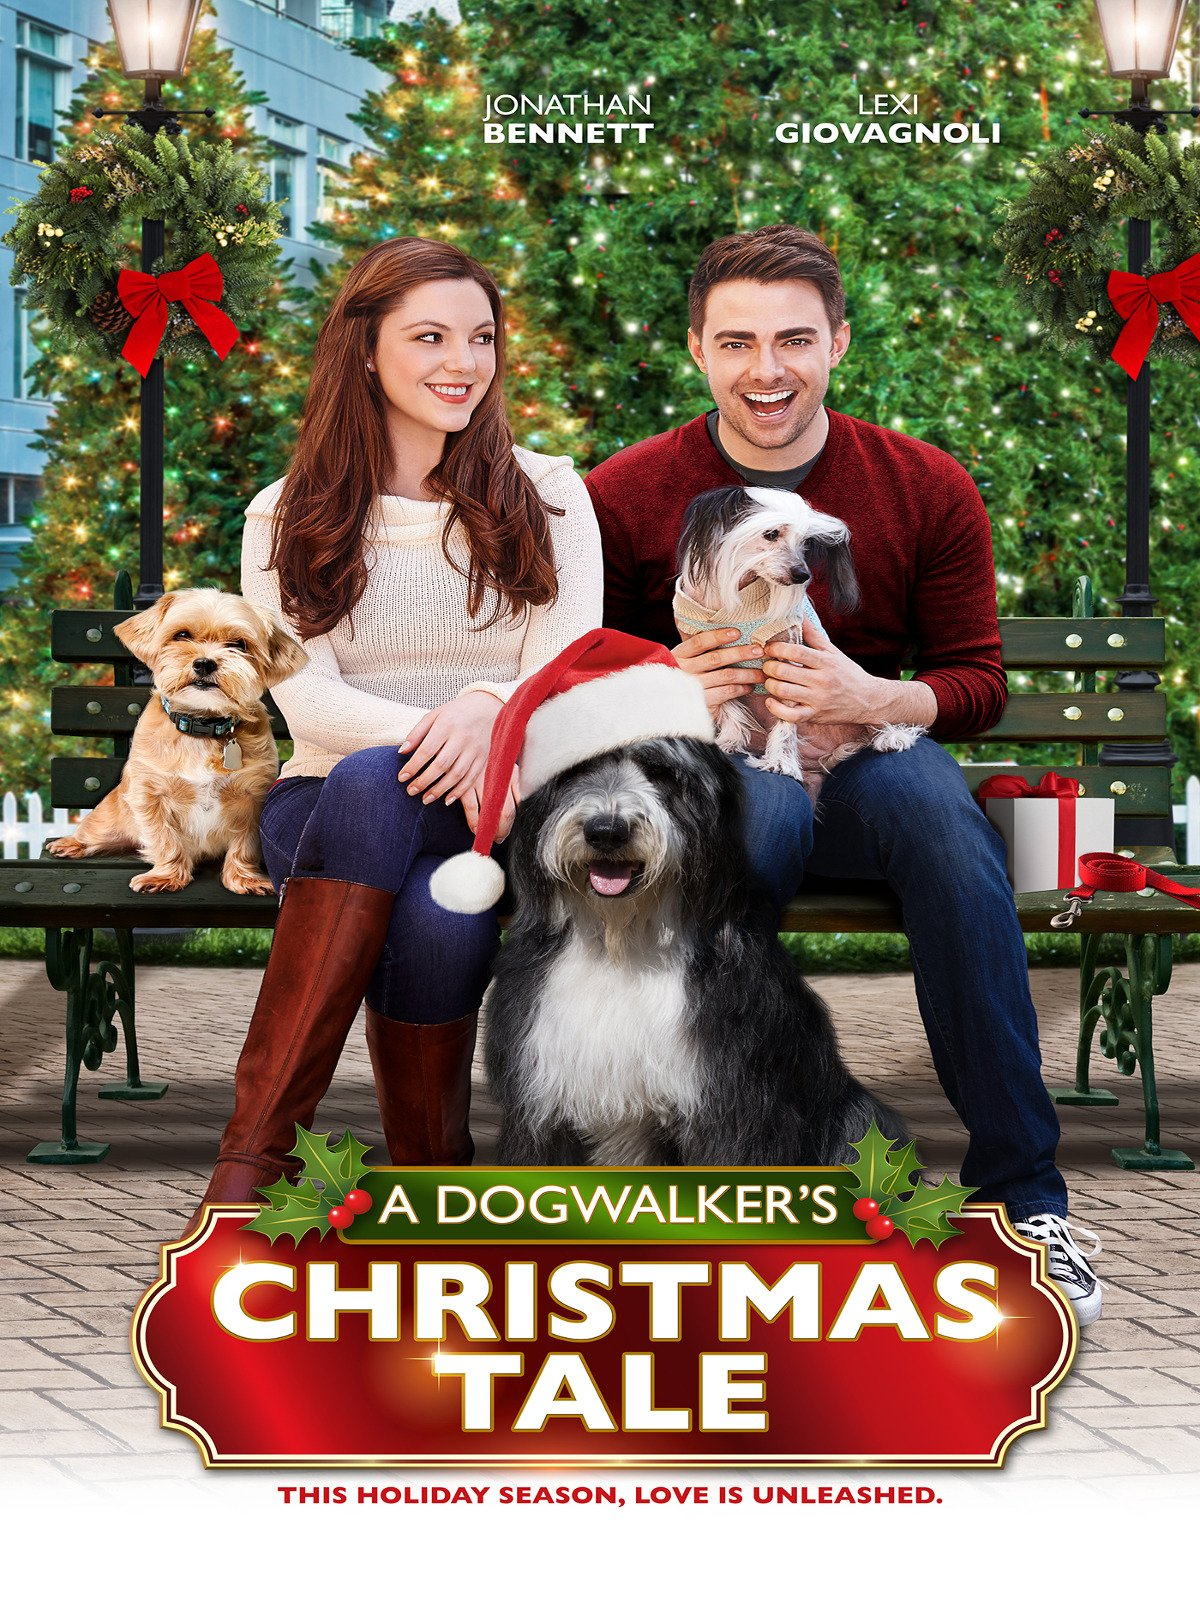 Image result for A Dogwalker's Christmas Tale